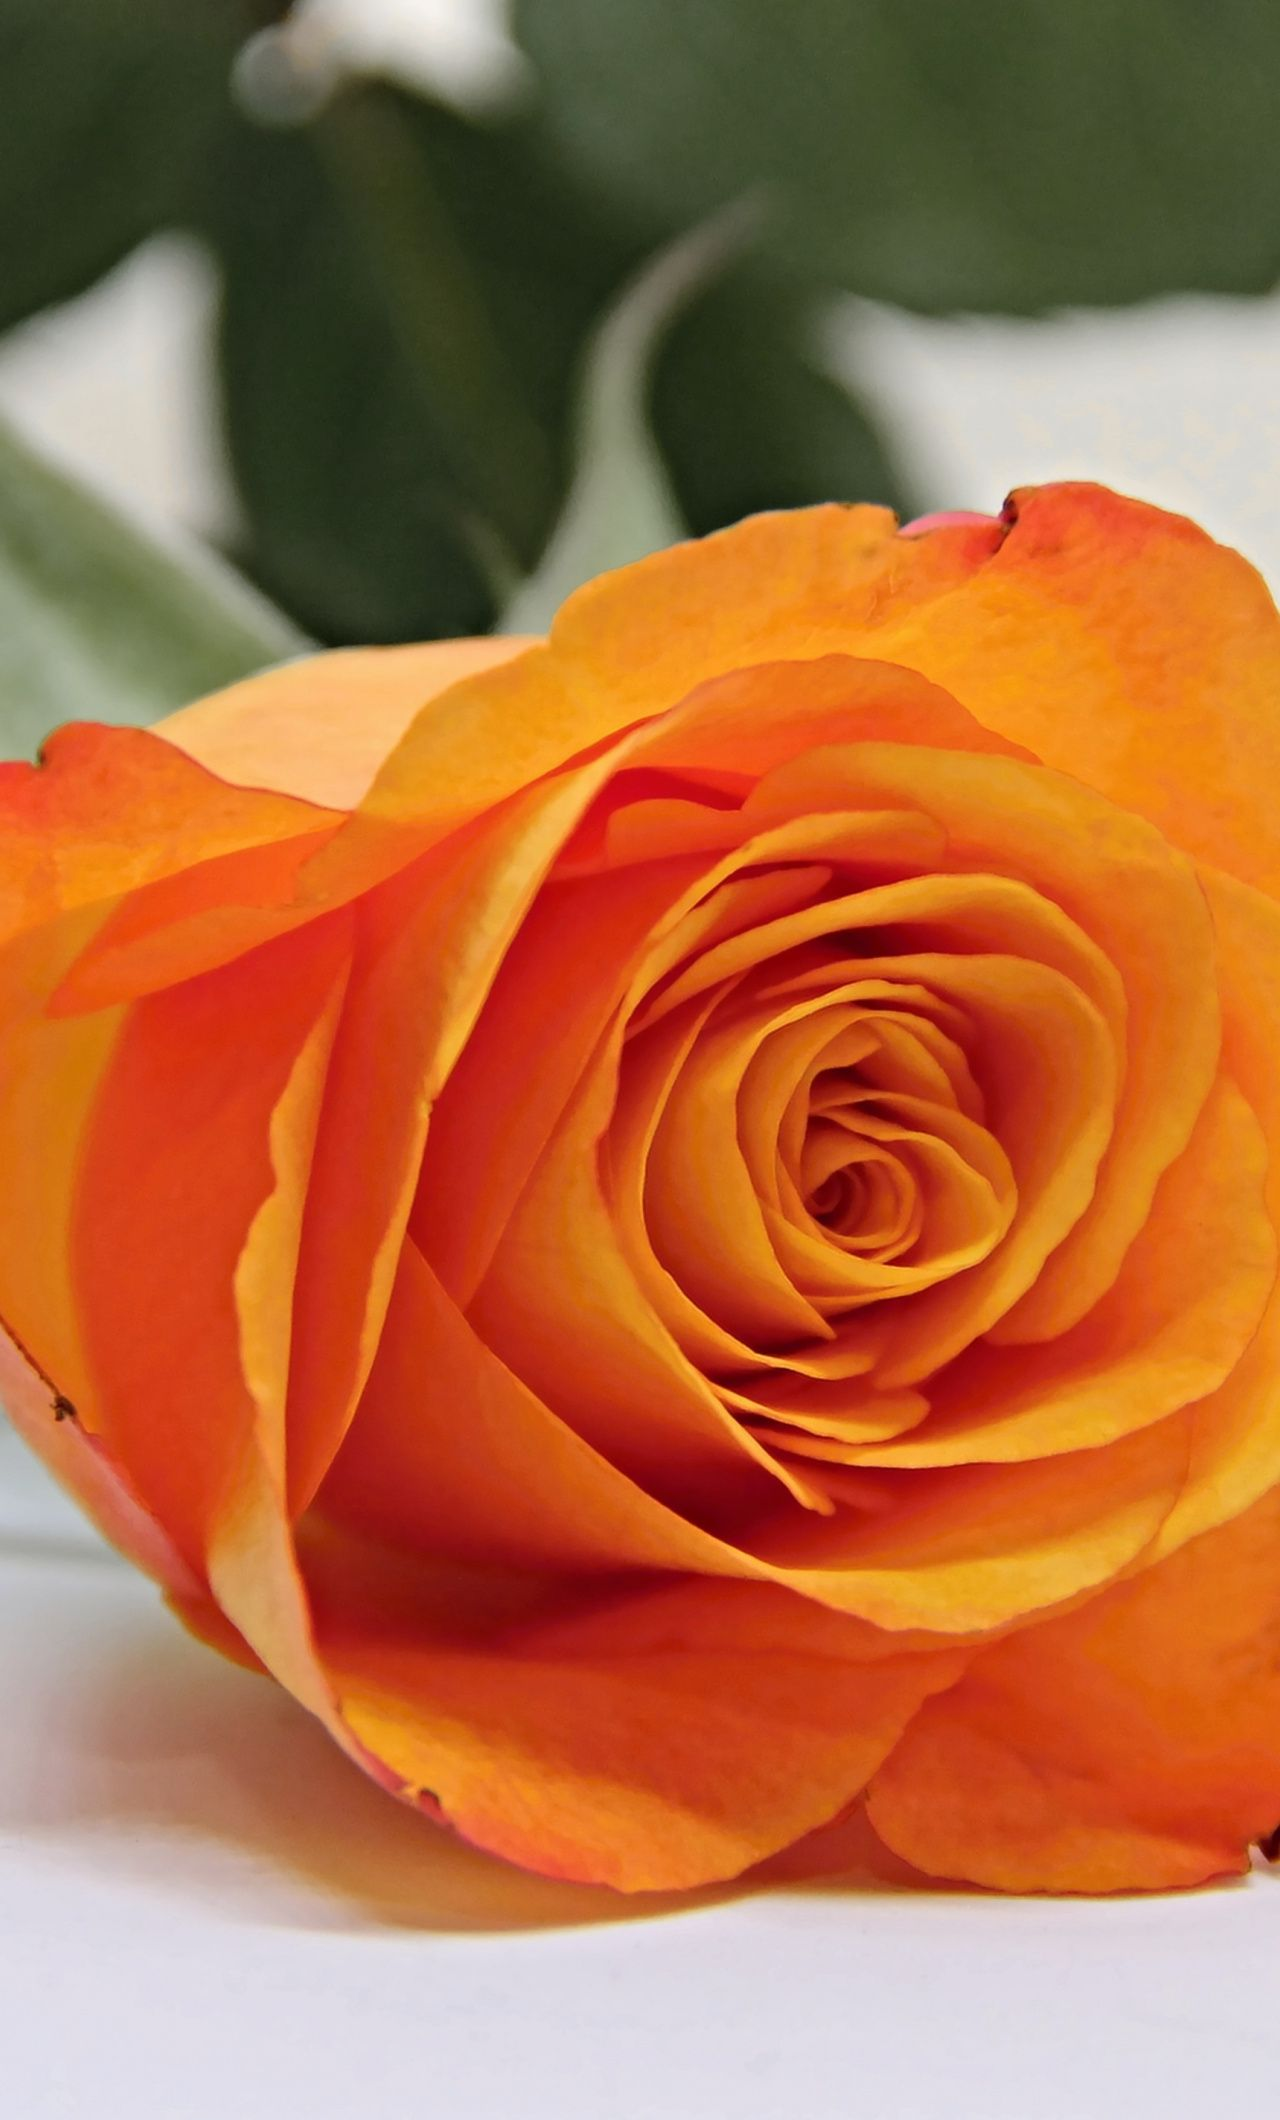 1280x2120 Download 1280x2120 wallpaper orange rose, bud, flower, iphone 6 plus ...